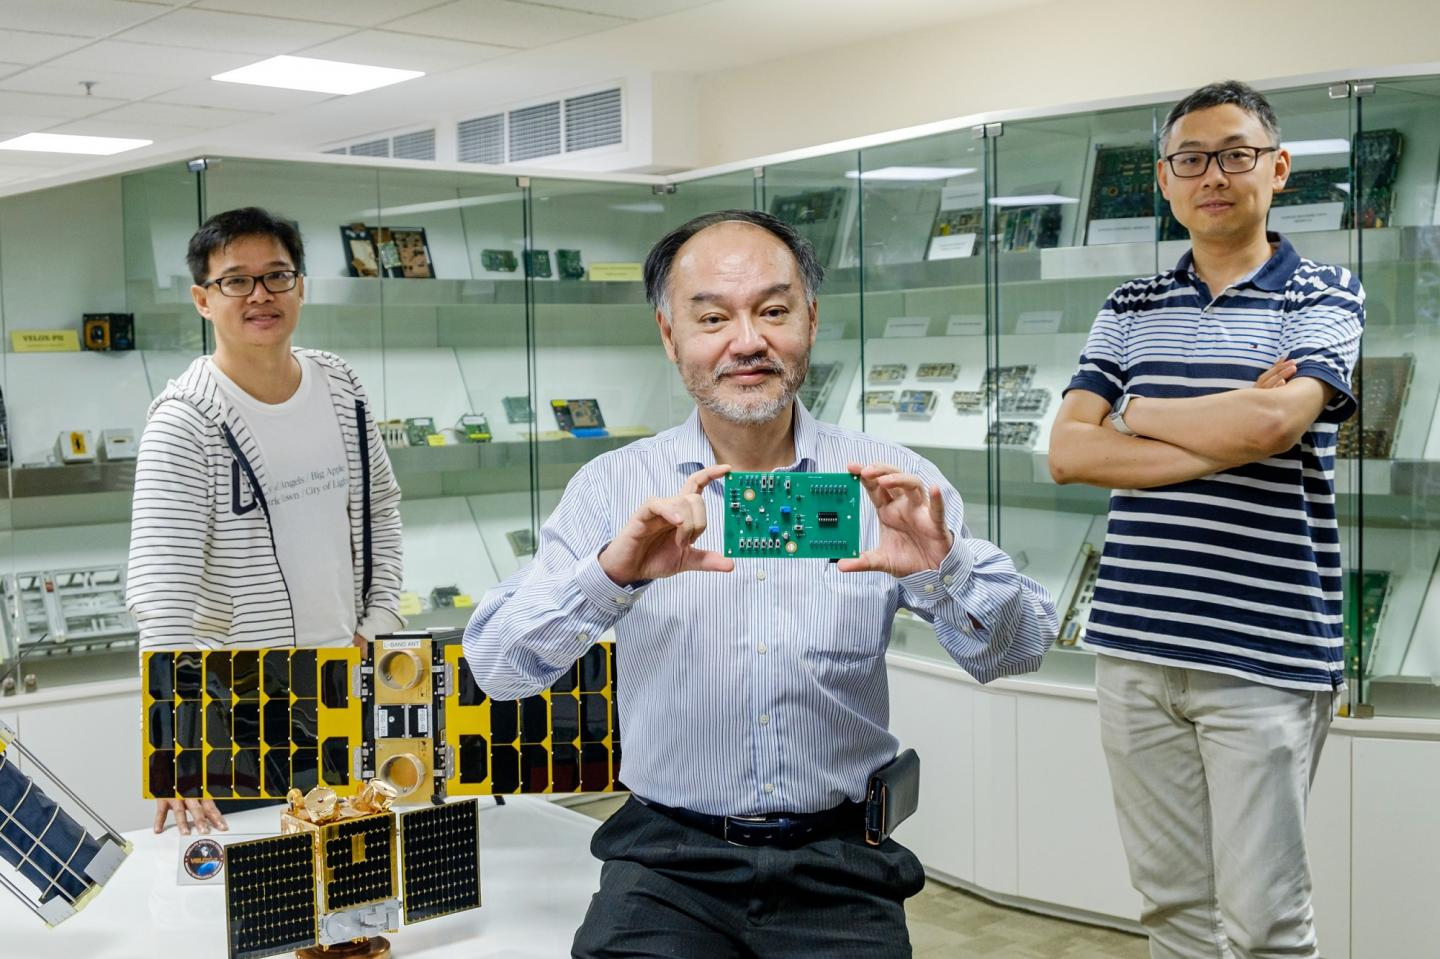 Co-Founders of Zero Error Systems with Their New Smart Chip